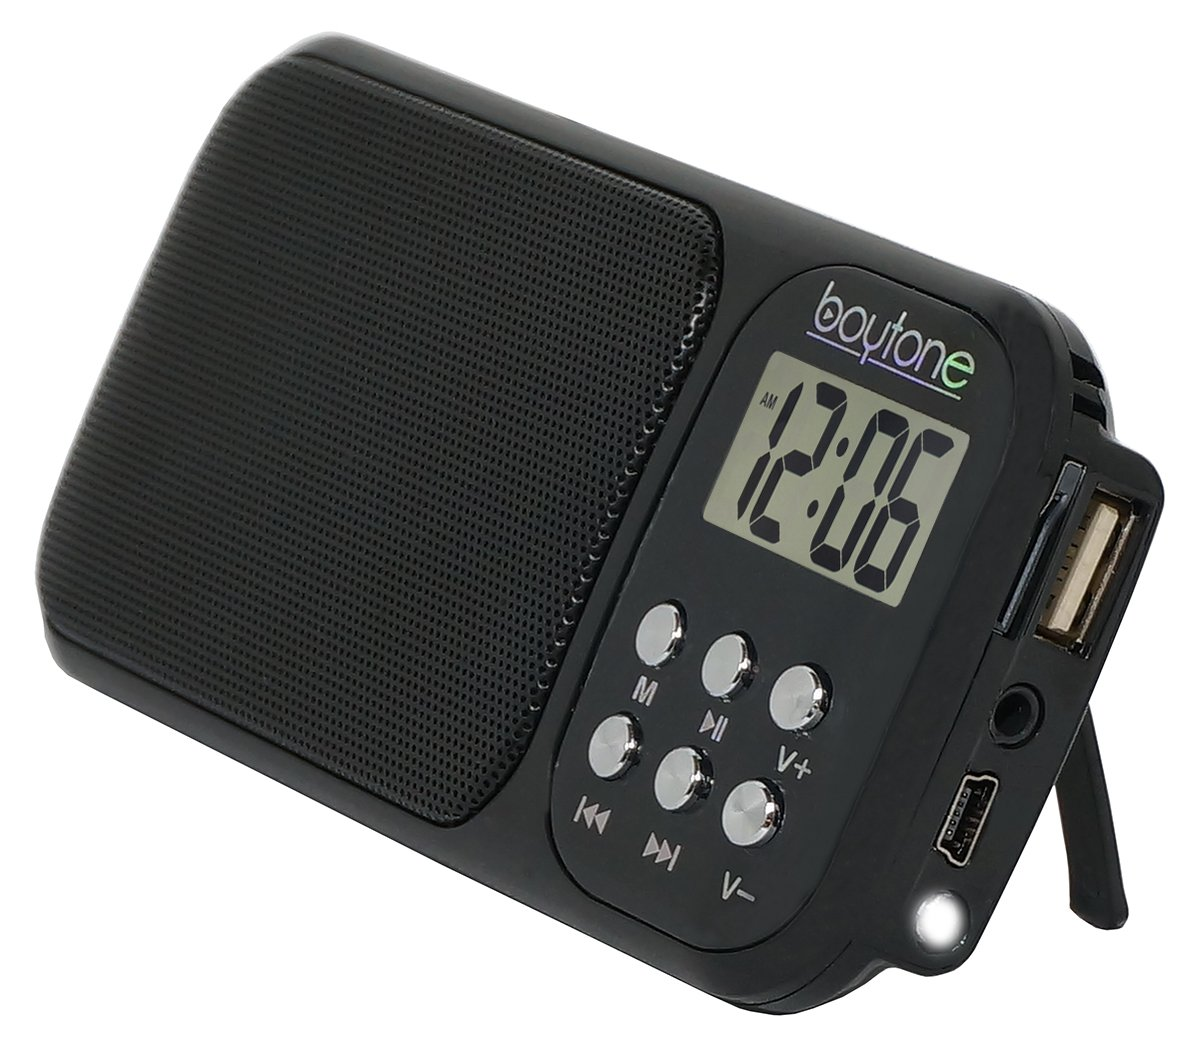 Boytone BT-92B Portable FM Transistor Radio Alarm Clock with Earphones, Rechargeable Battery, Built-in Speaker, Countdown Timer, LCD Tuning & Carry Strap + USB, Micro SD slot, AUX, LED Flash Light